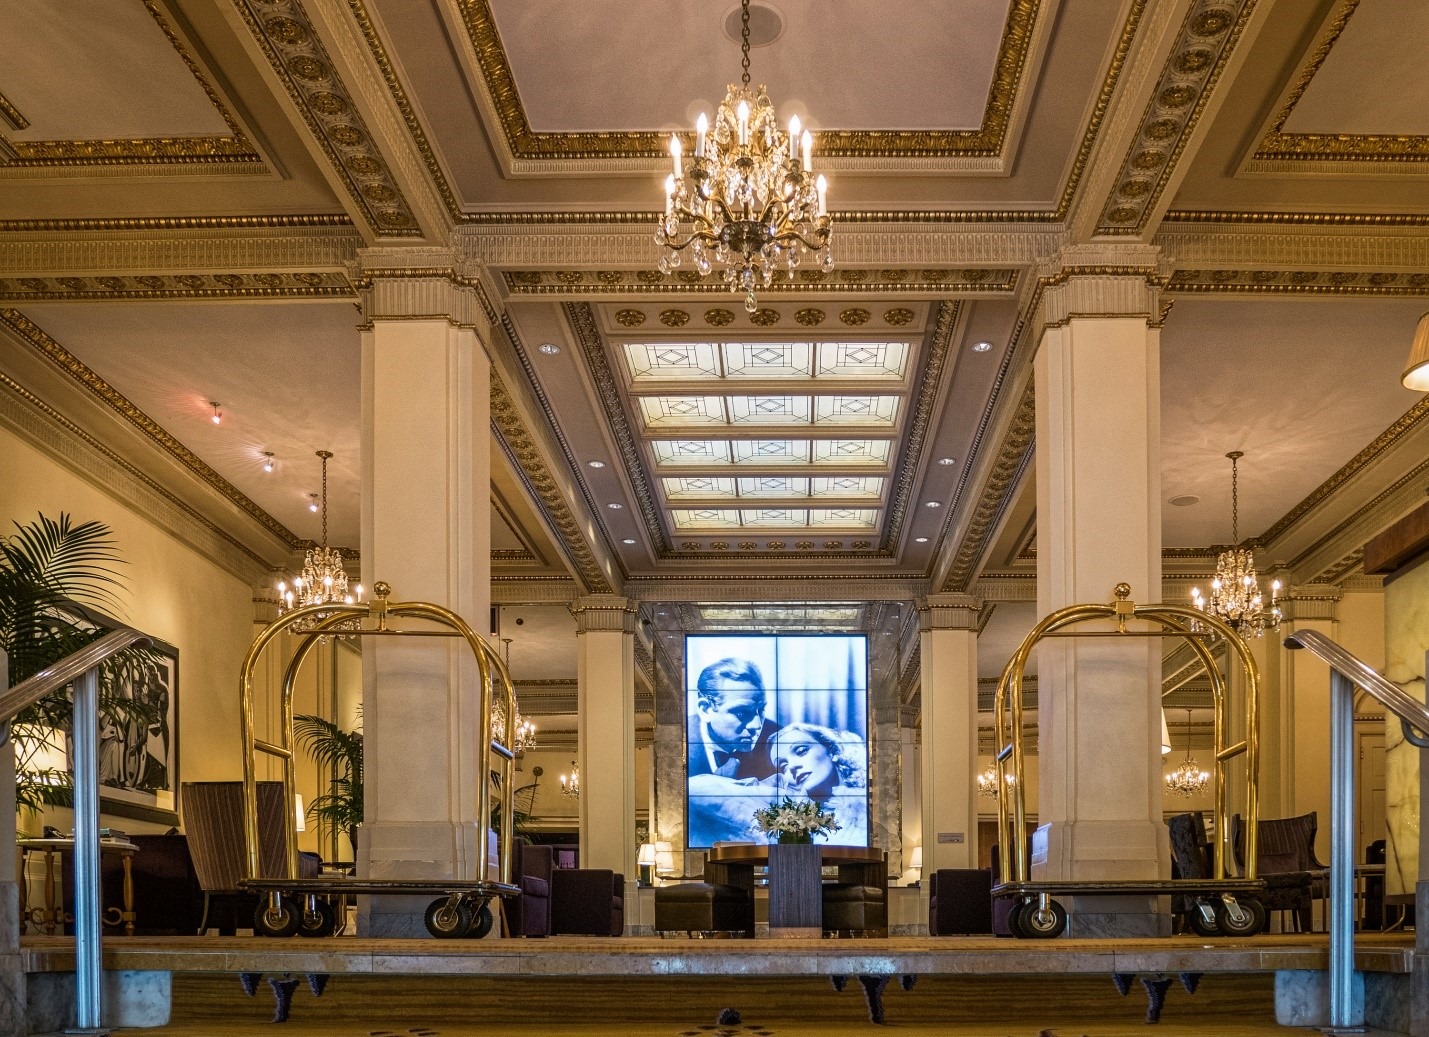 Hotels In Portland Oregon >> Provenance Hotels: Hotel deLuxe – The List – SURFACE